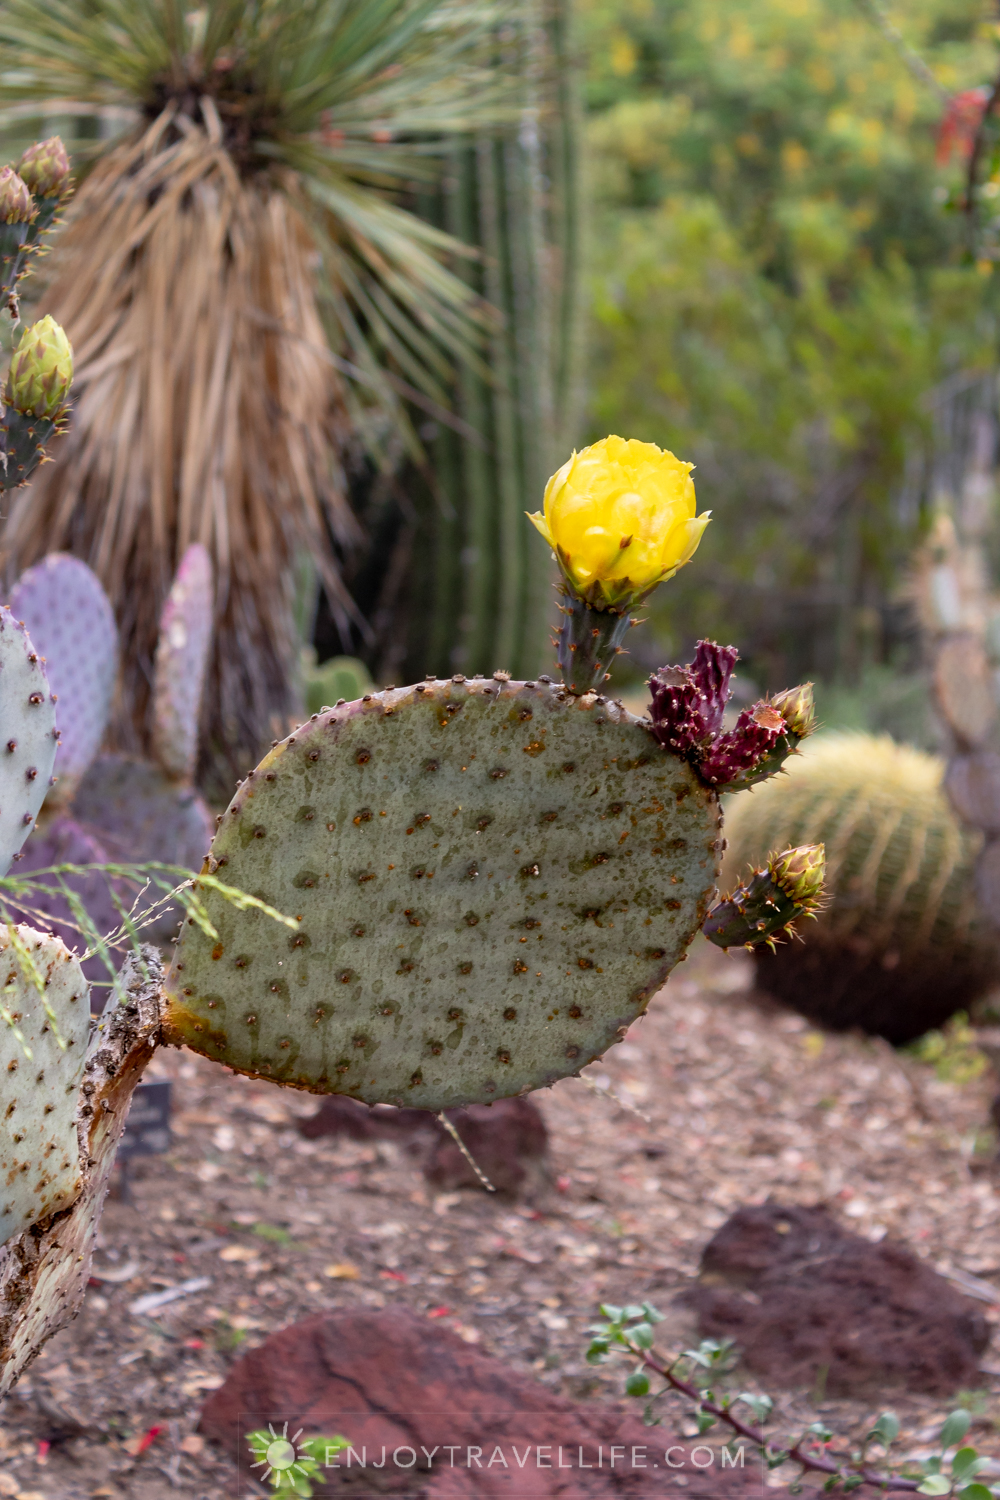 Cactus in Bloom - The Huntington Botanical Gardens